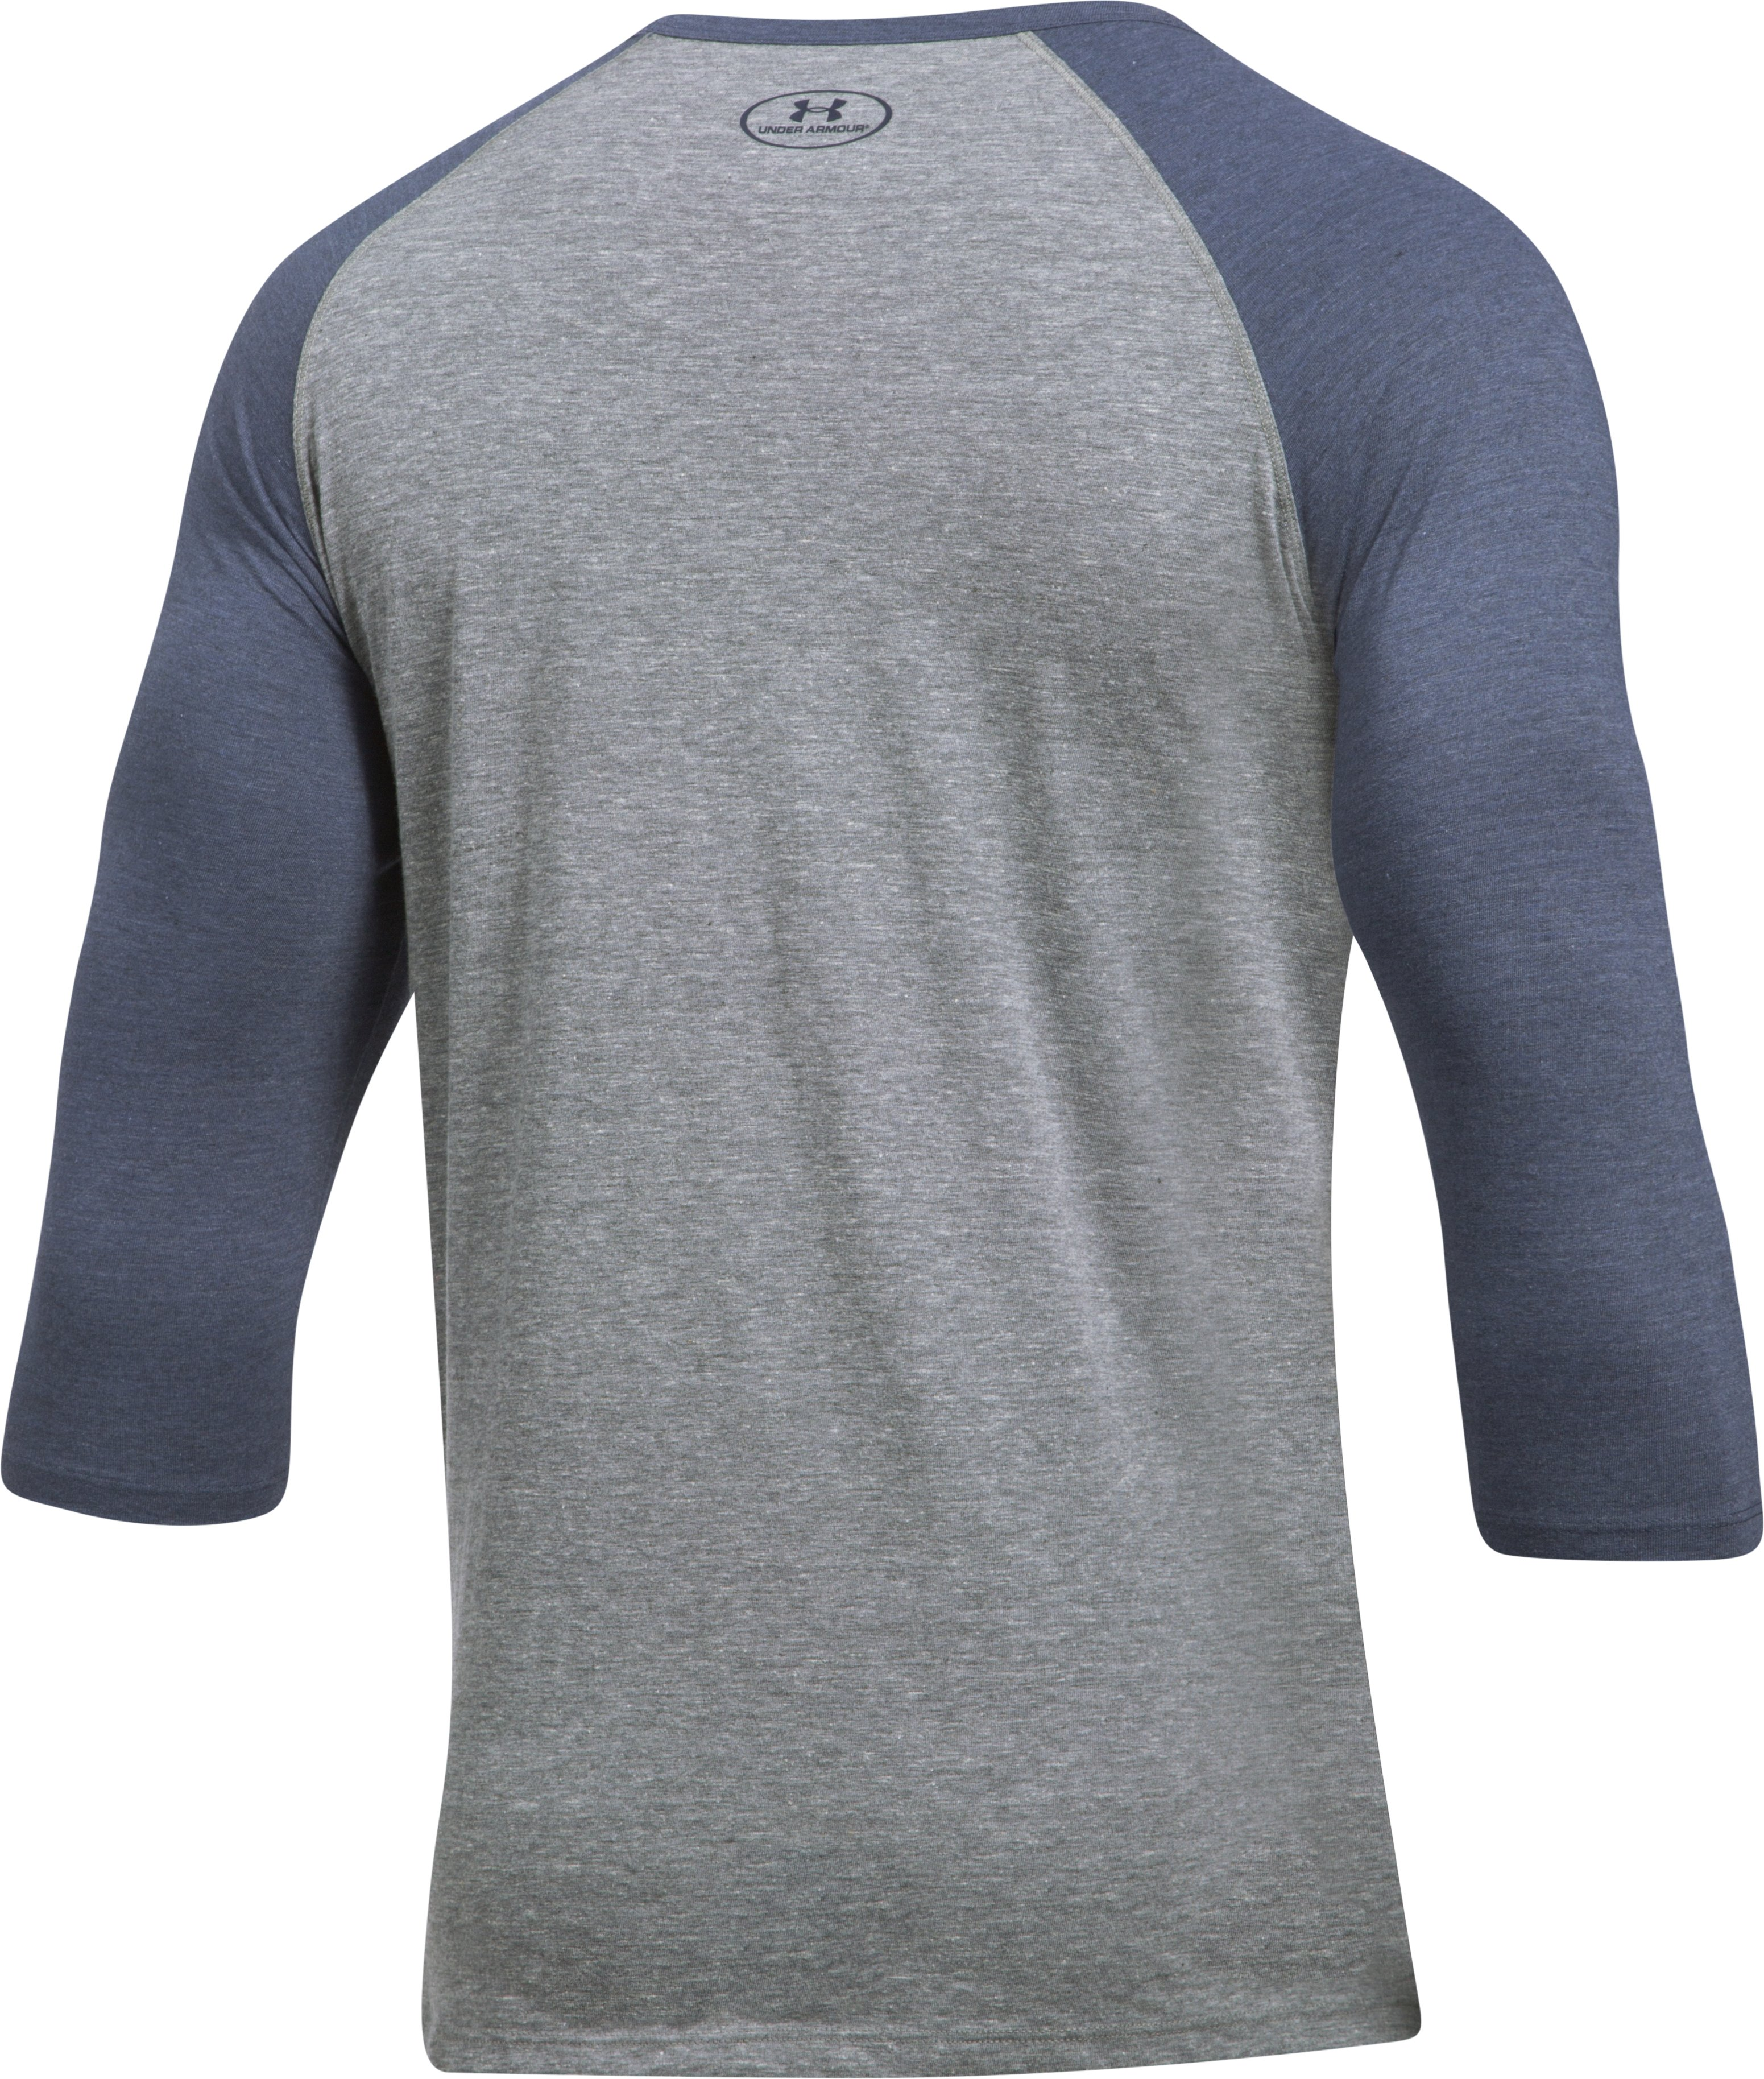 Men's Bay Rays ¾ Sleeve T-Shirt, Midnight Navy,